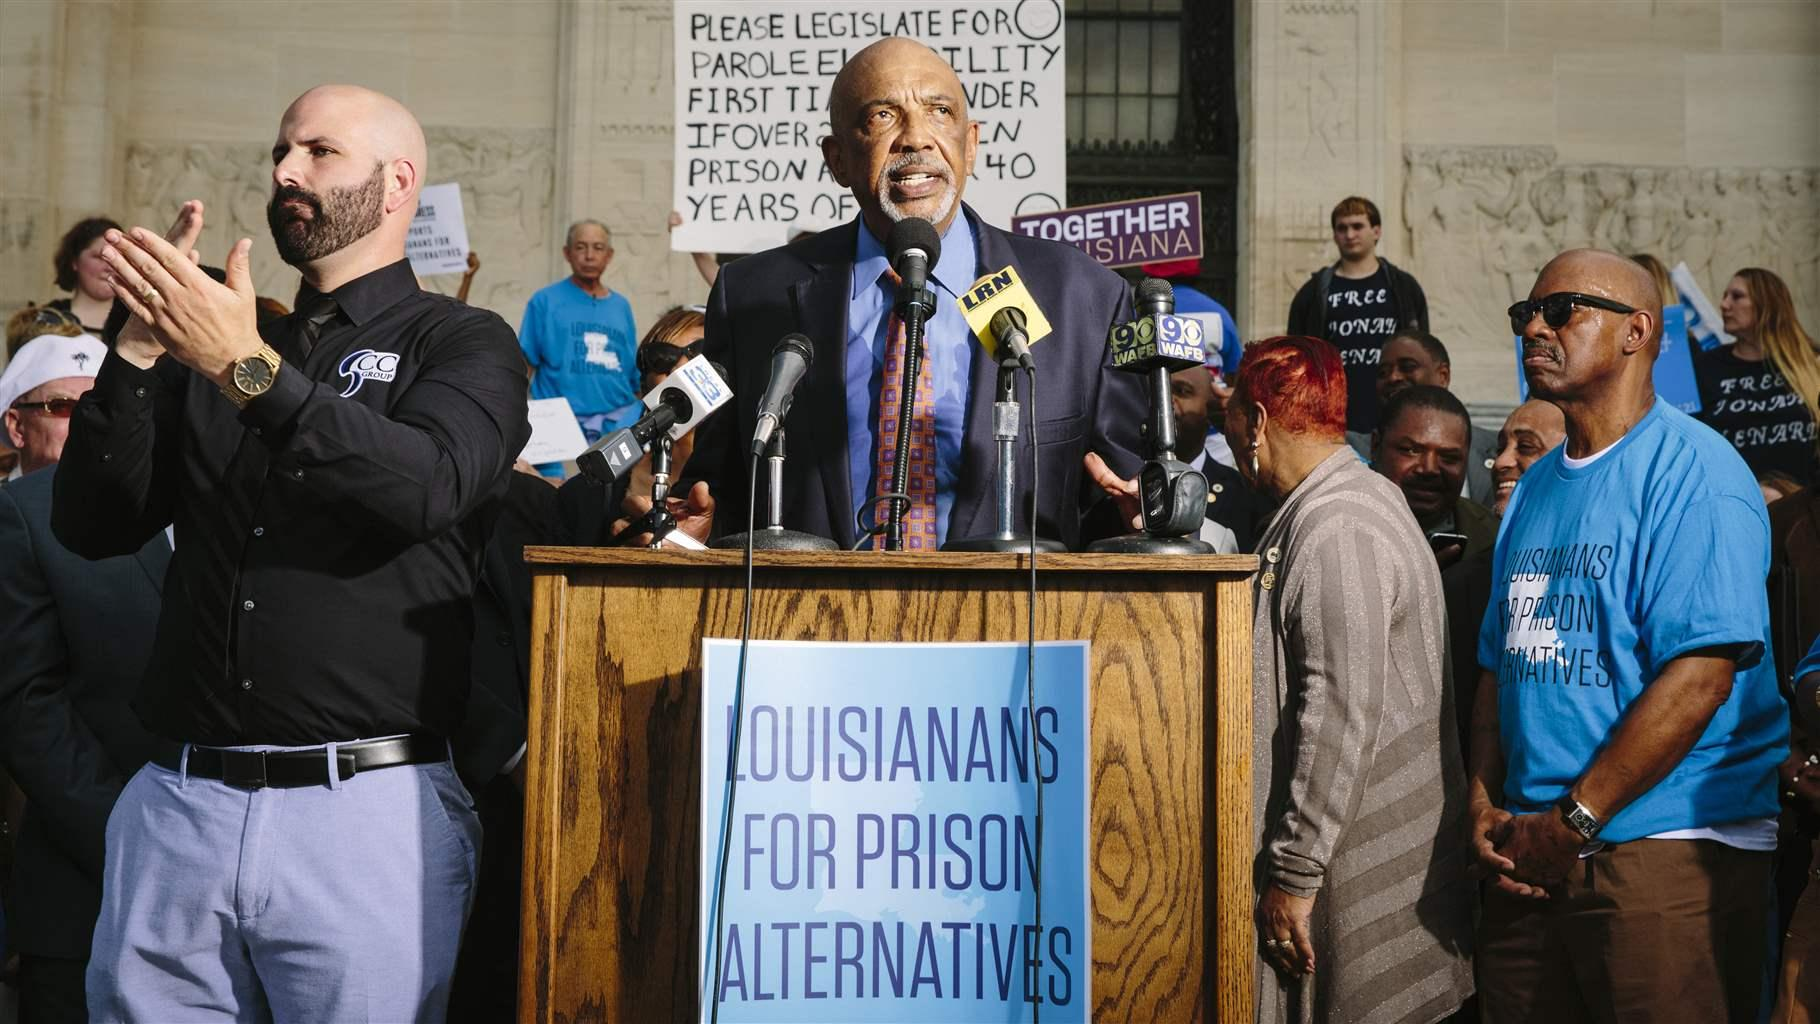 Louisianans for Prison Alternatives